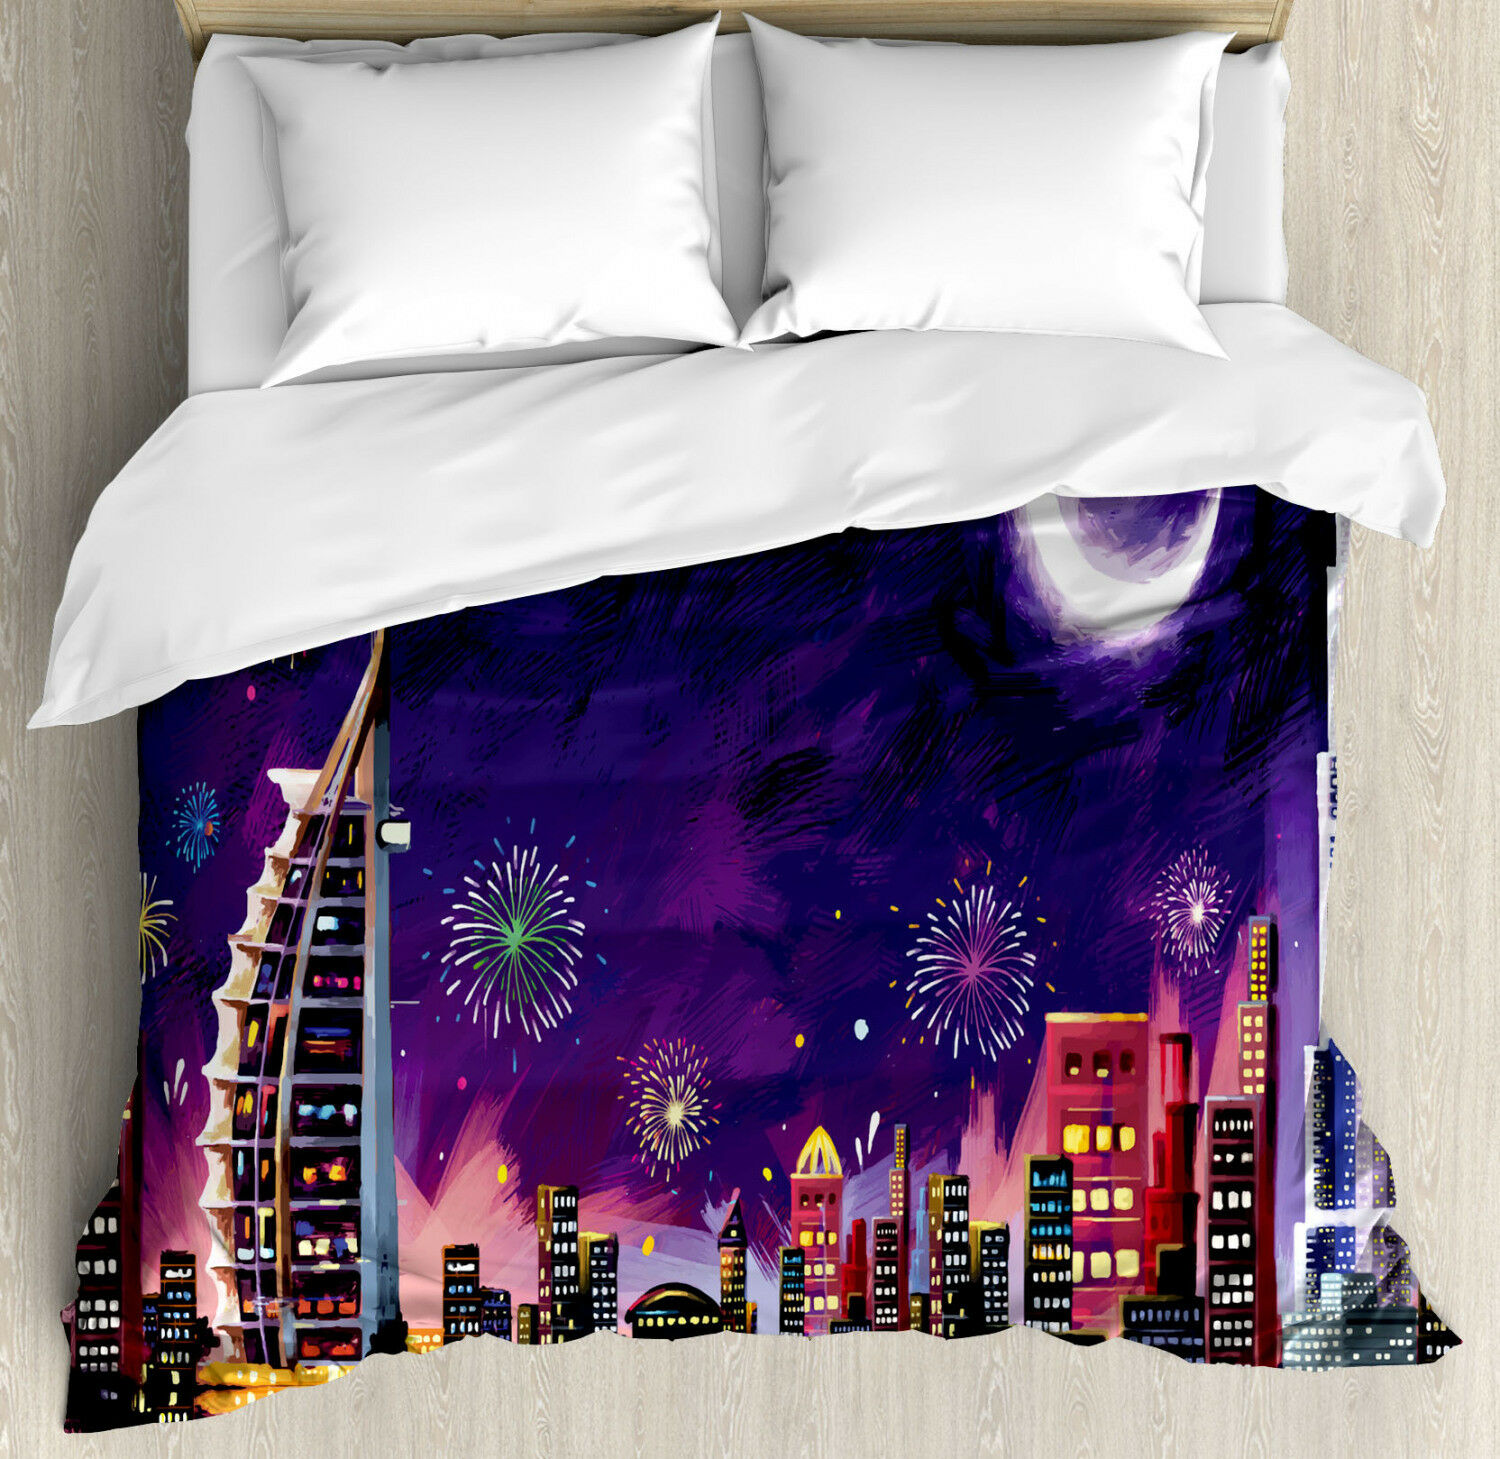 Scenery Duvet Cover Set with Pillow Shams Night Dubai Skyscraper Print